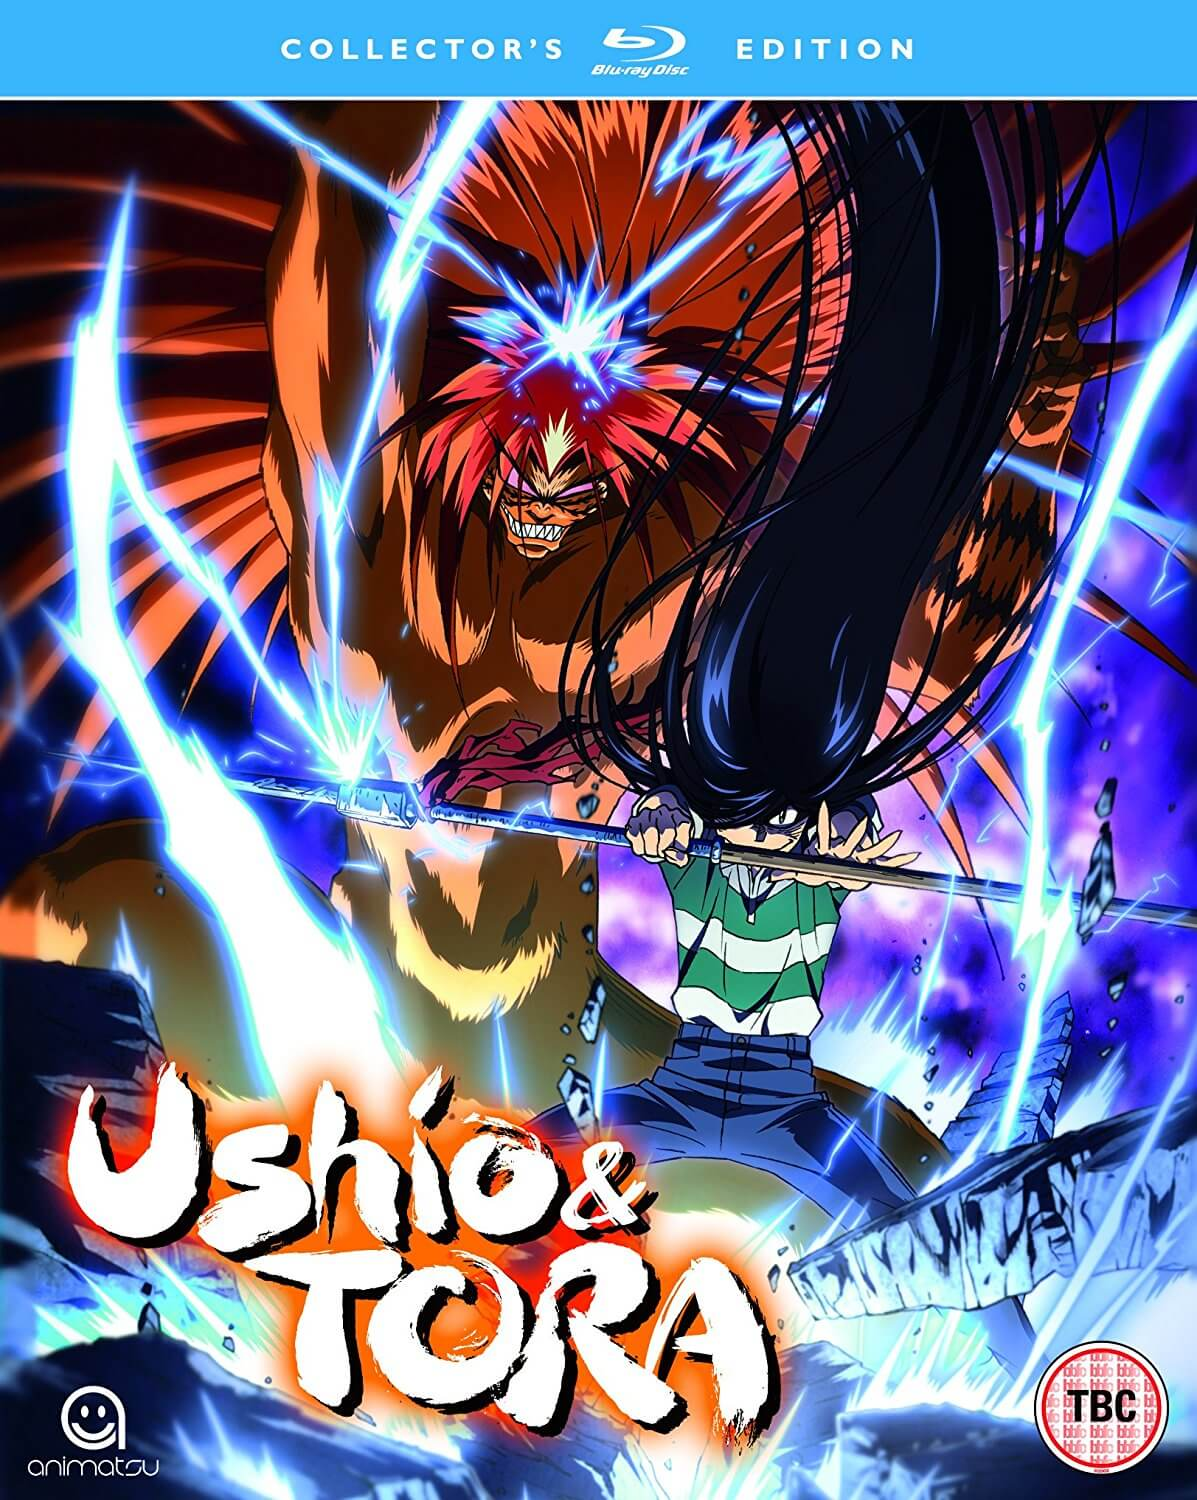 Ushio and Tora - Complete Series Collection (Collector